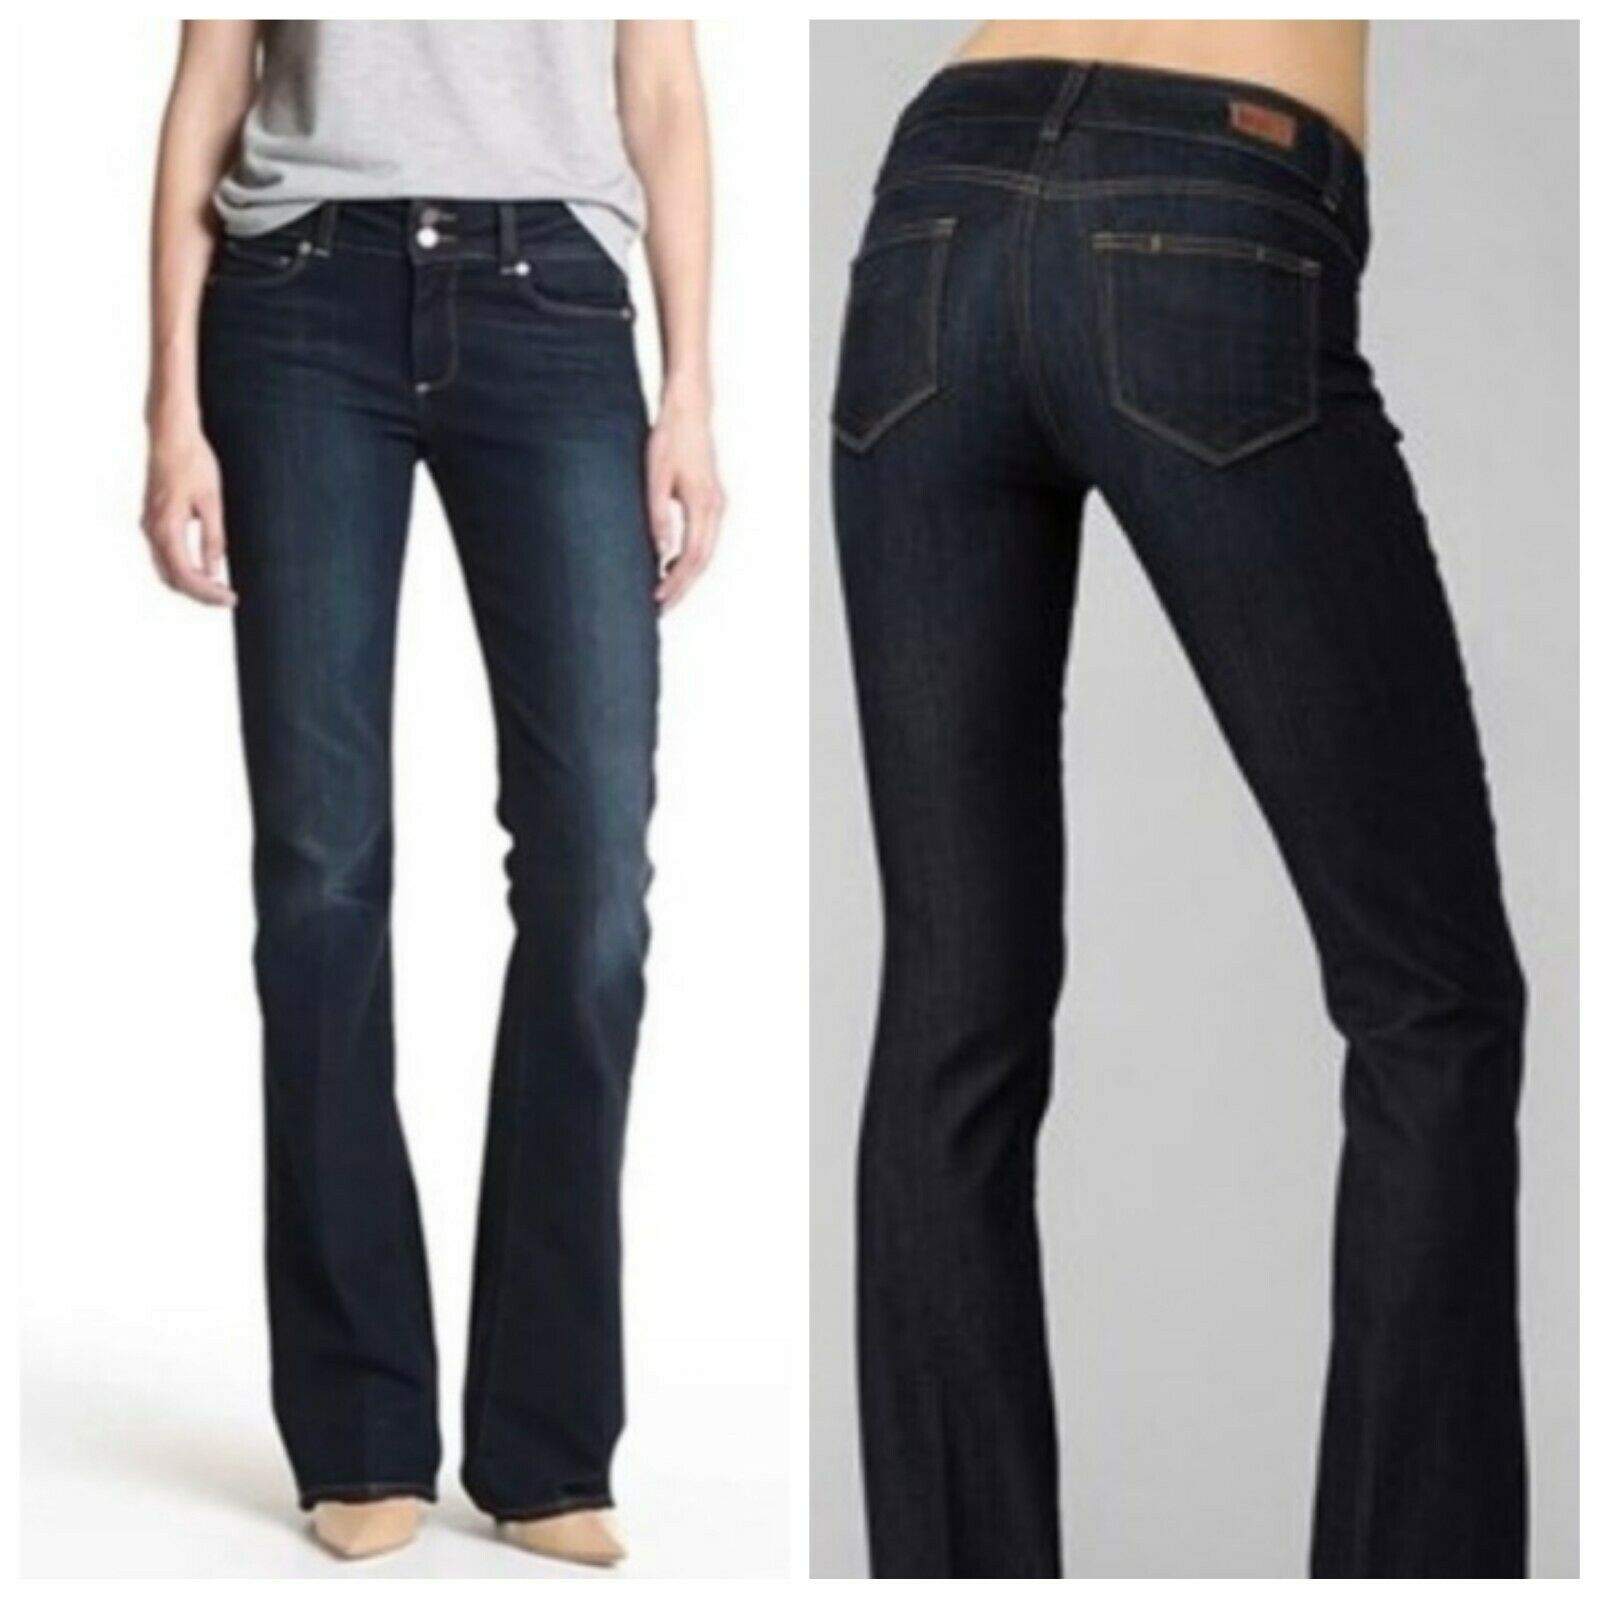 Paige Denim Hidden Hills Boot Cut Dark Wash